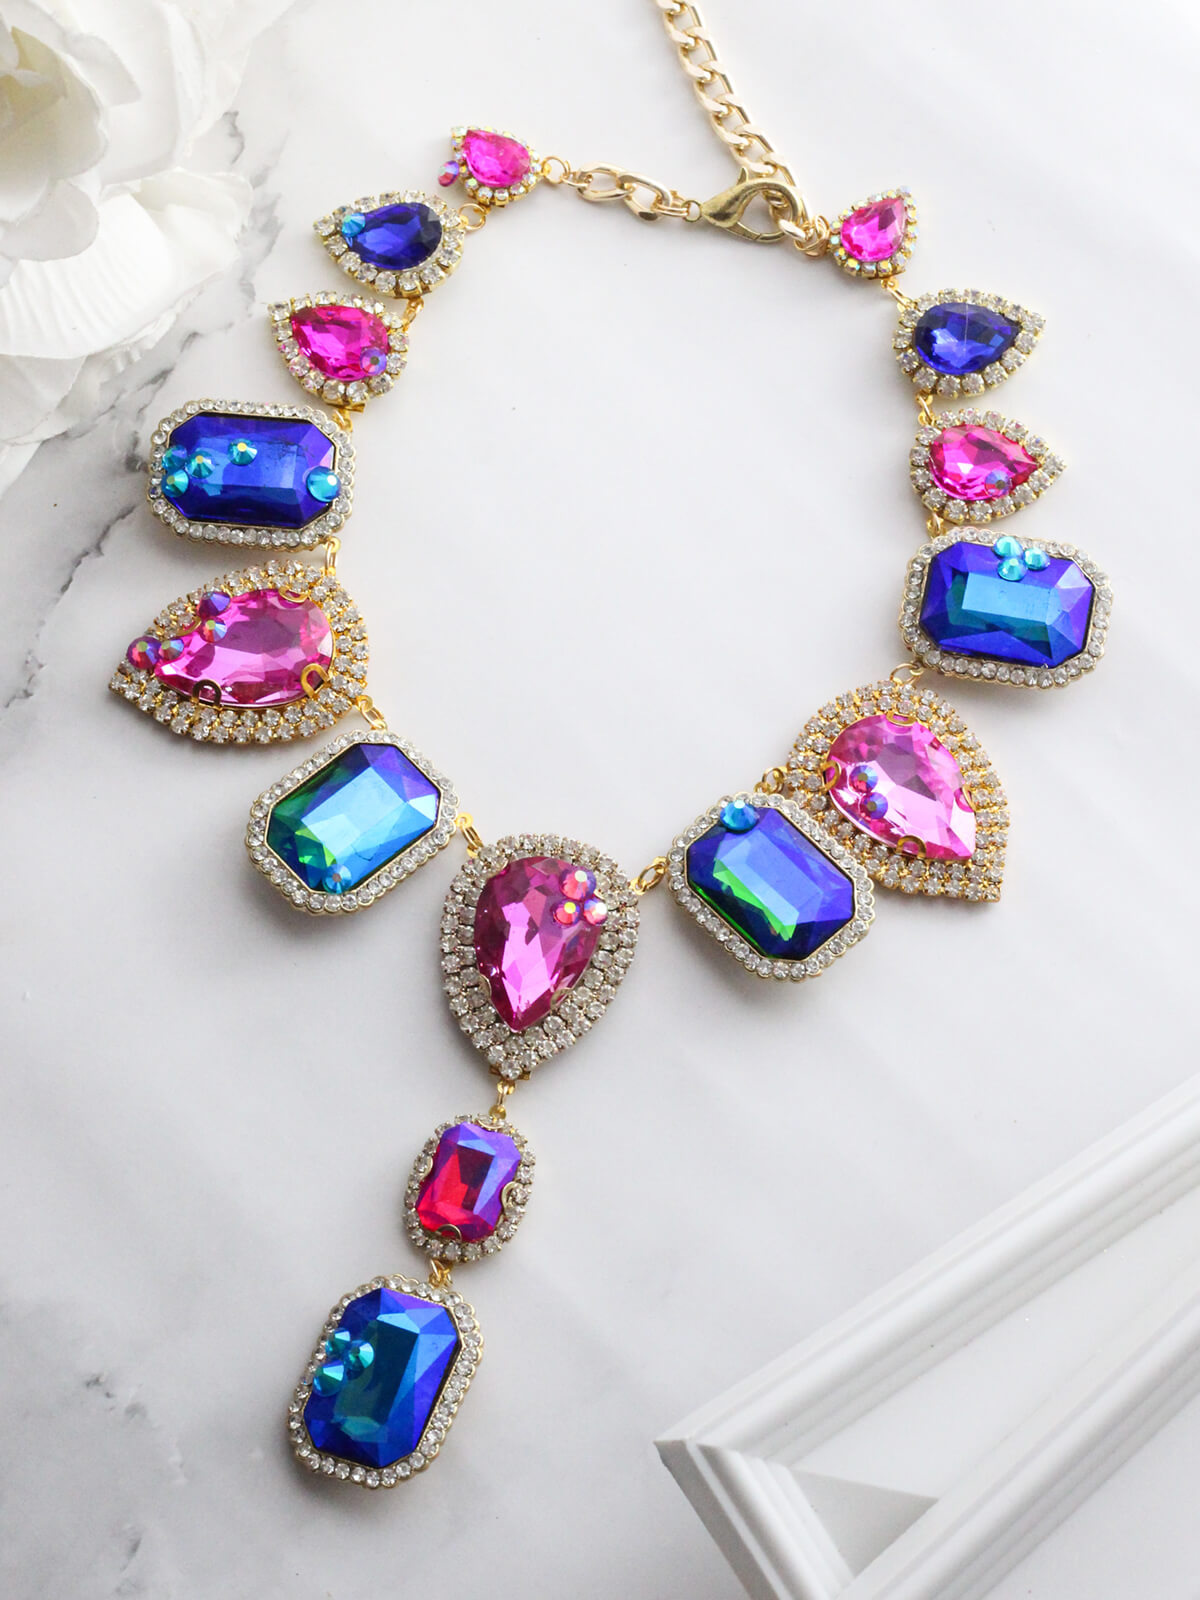 Necklace Coctails 22a